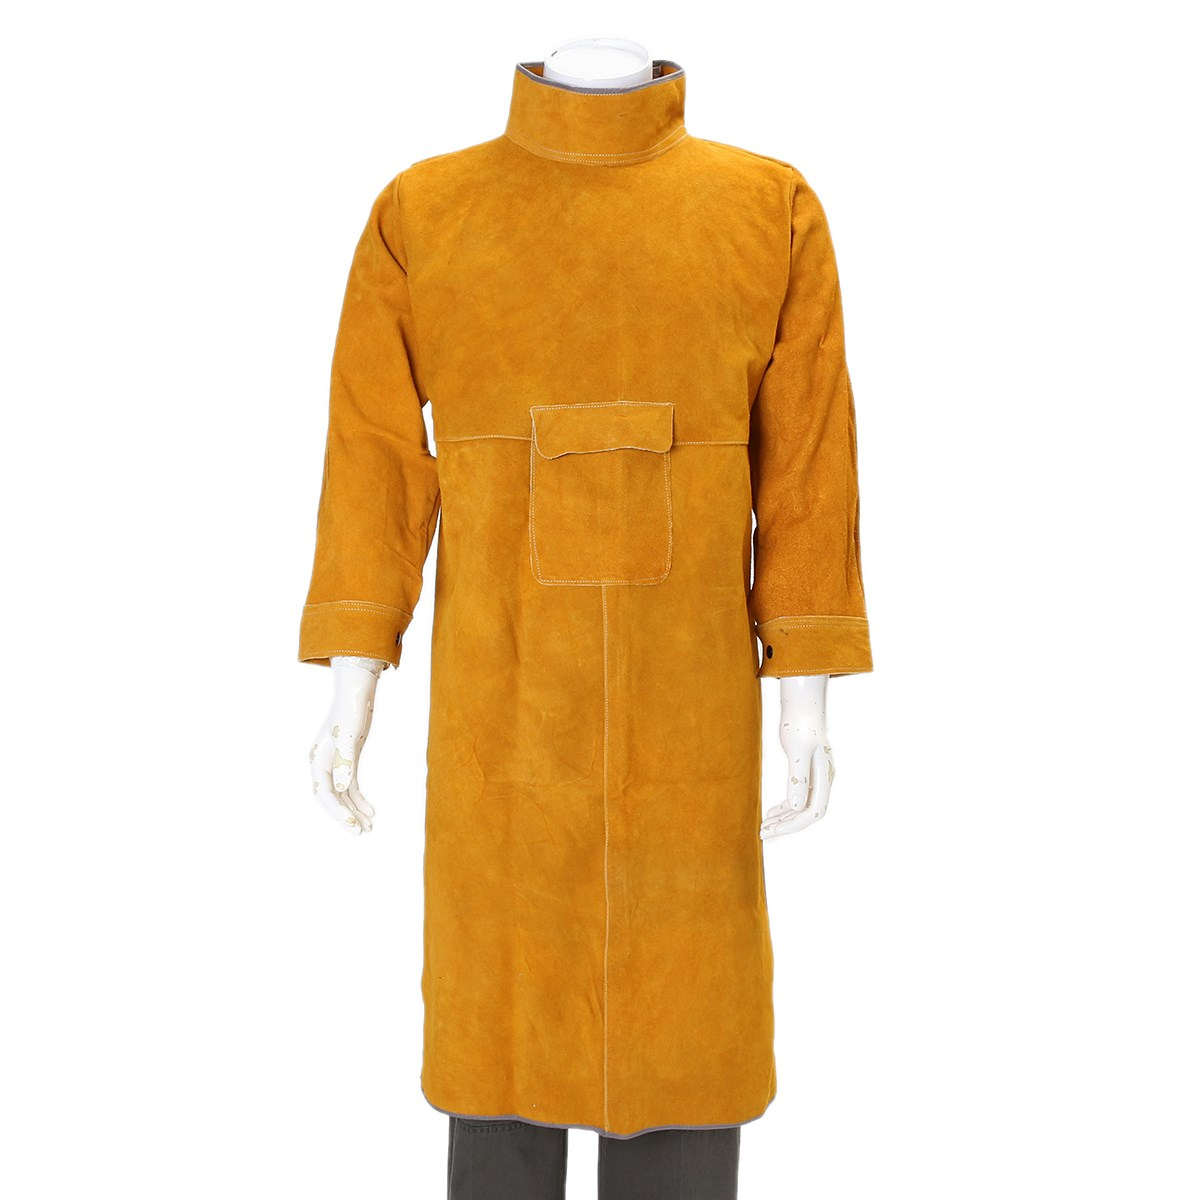 NEW Durable Leather Welding Long Coat Apron Protective Clothing Apparel Suit Welder Workplace Safety Clothing welder machine plasma cutter welder mask for welder machine